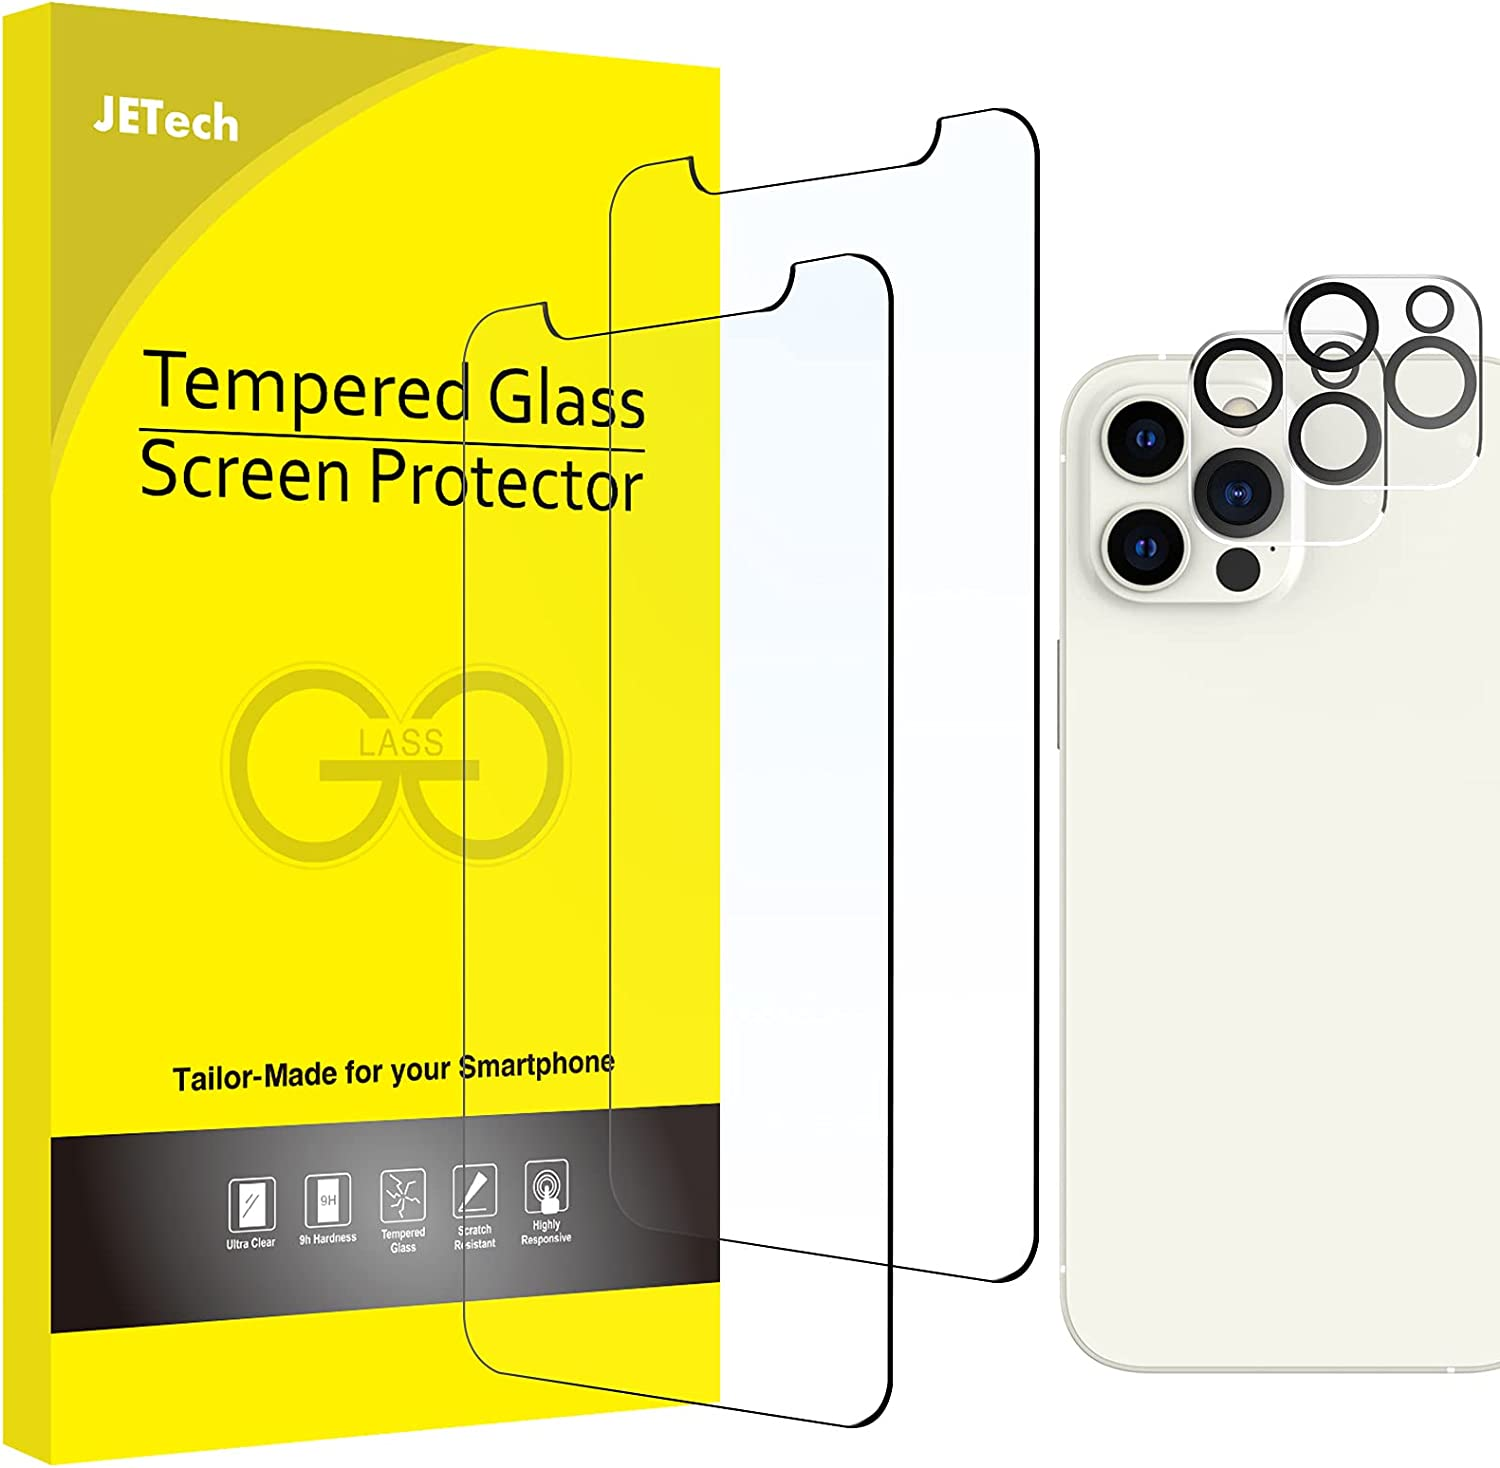 JETech Screen Protector and Camera Lens Protector Compatible with iPhone 12 Pro 6.1-Inch (Not for iPhone 12), Tempered Glass Film, 2-Pack Each